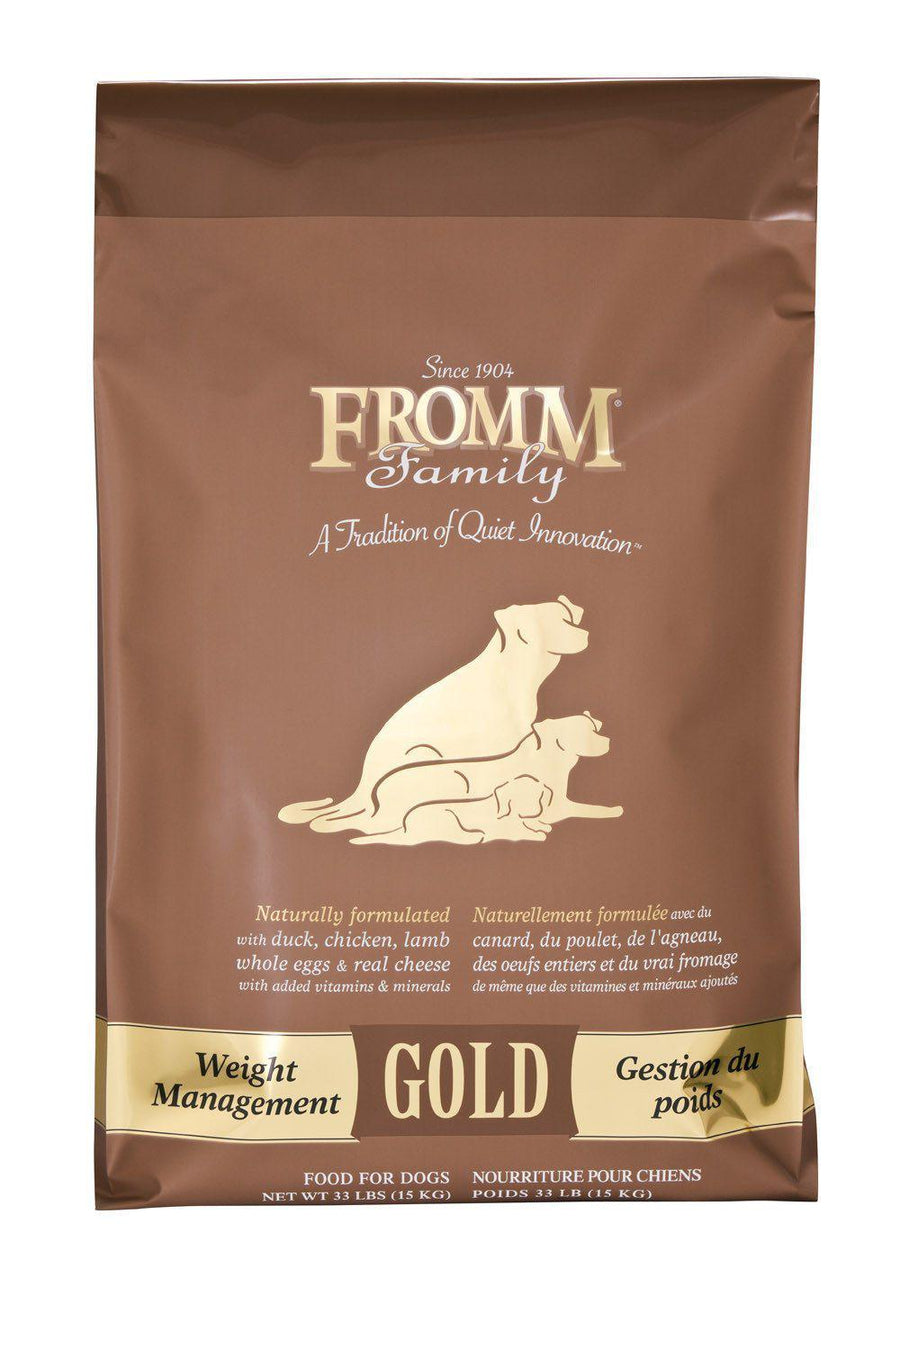 Fromm Dog Food - Gold Weight Management-Le Pup Pet Supplies and Grooming